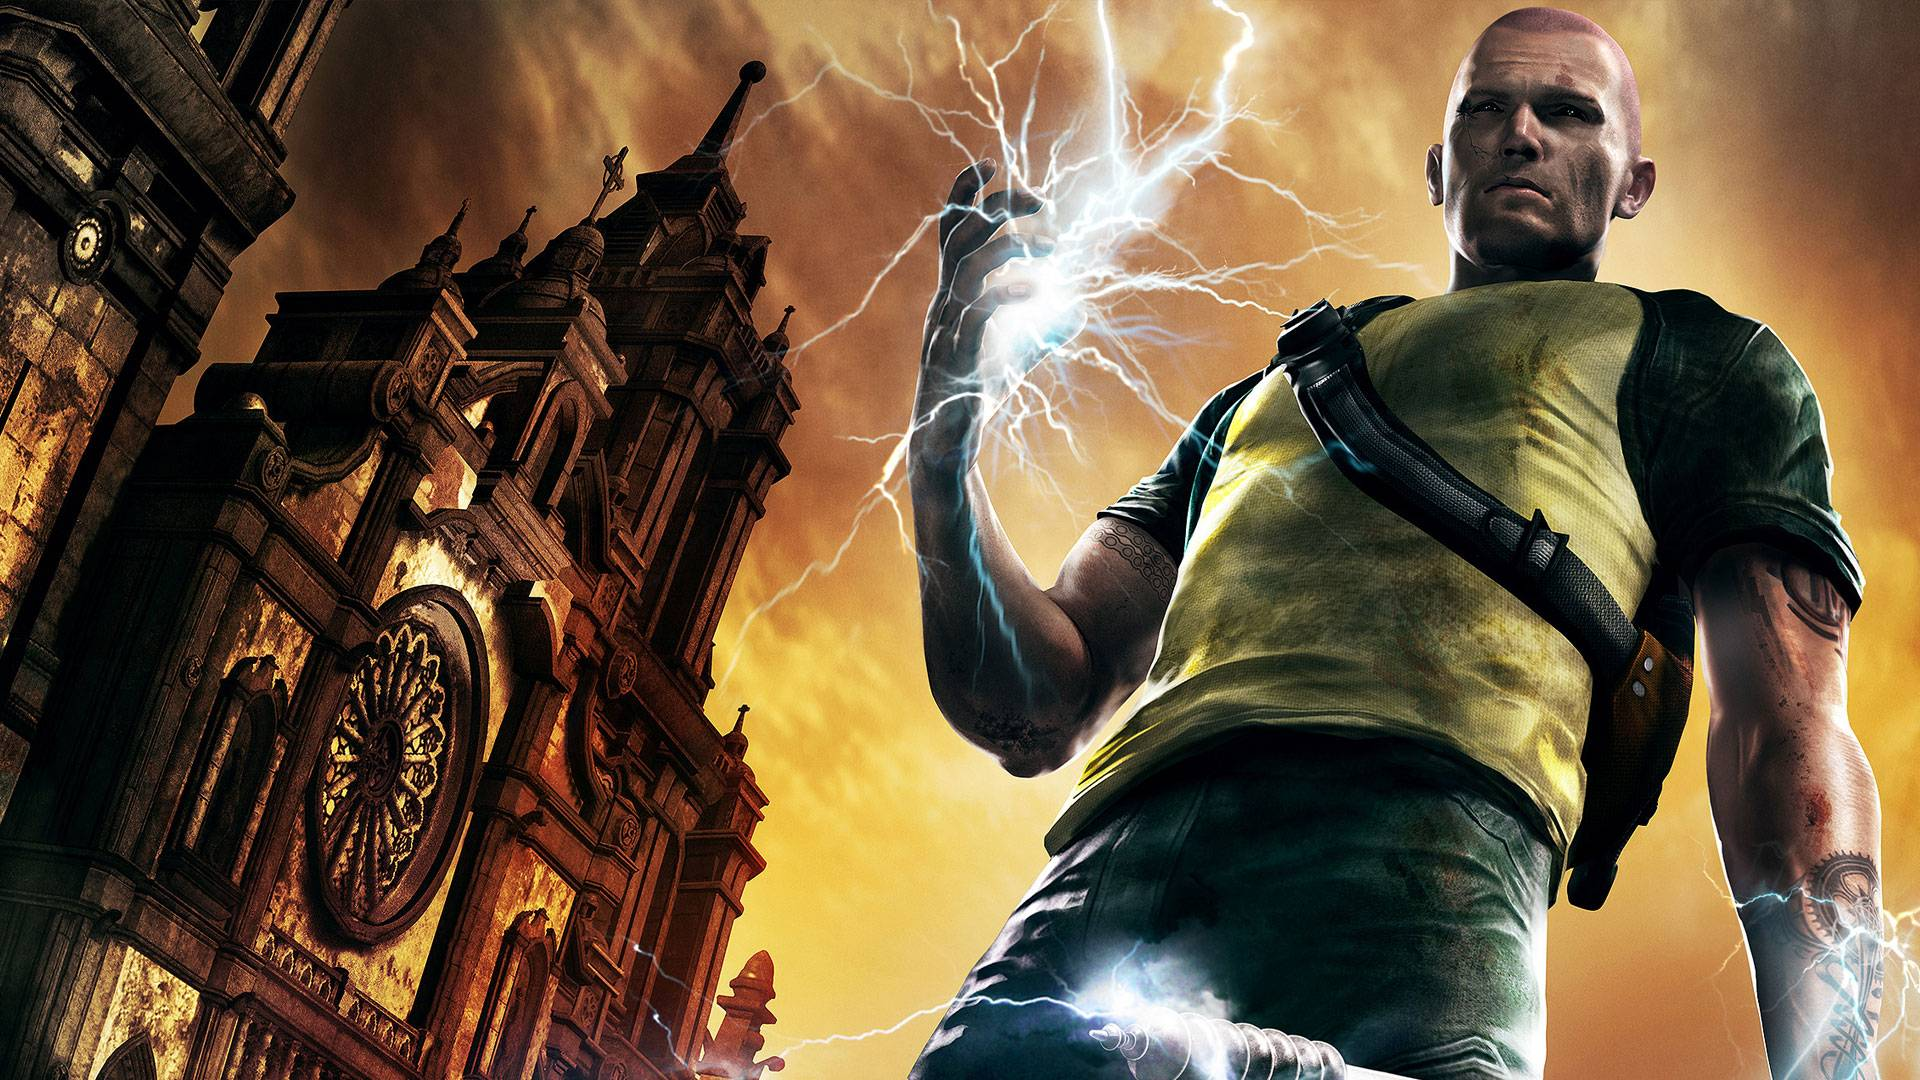 inFamous 2 Wallpapers in full 1080P HD